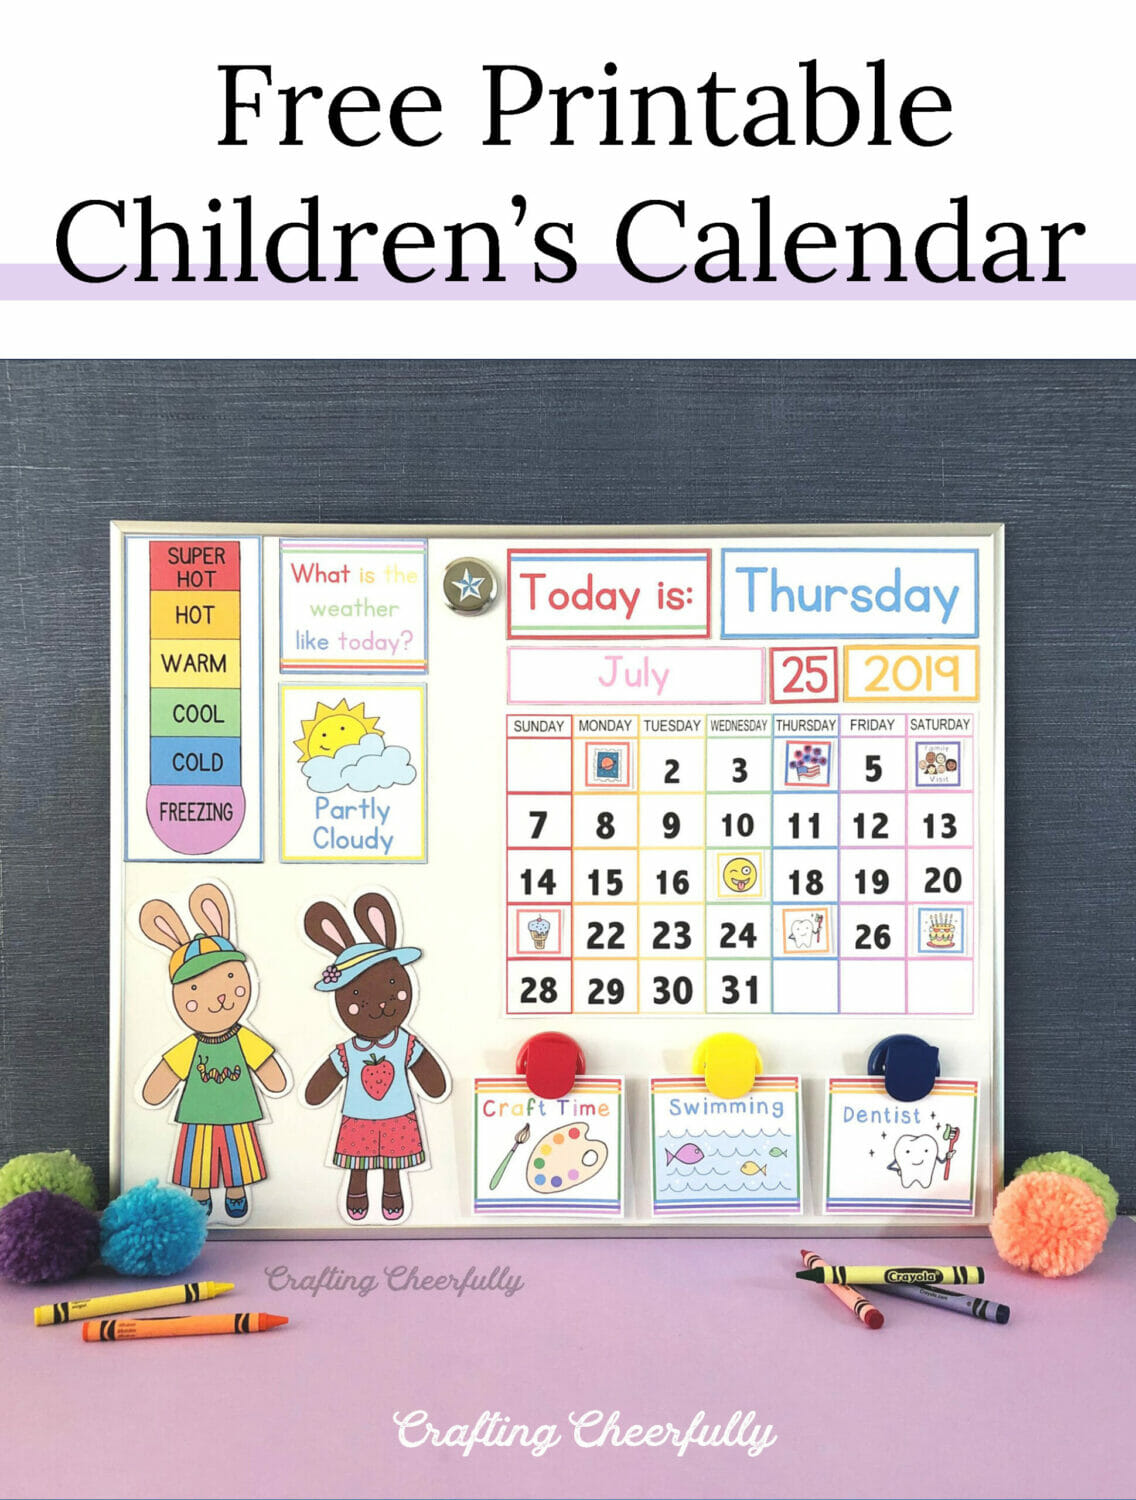 Free Printable Children's Calendar